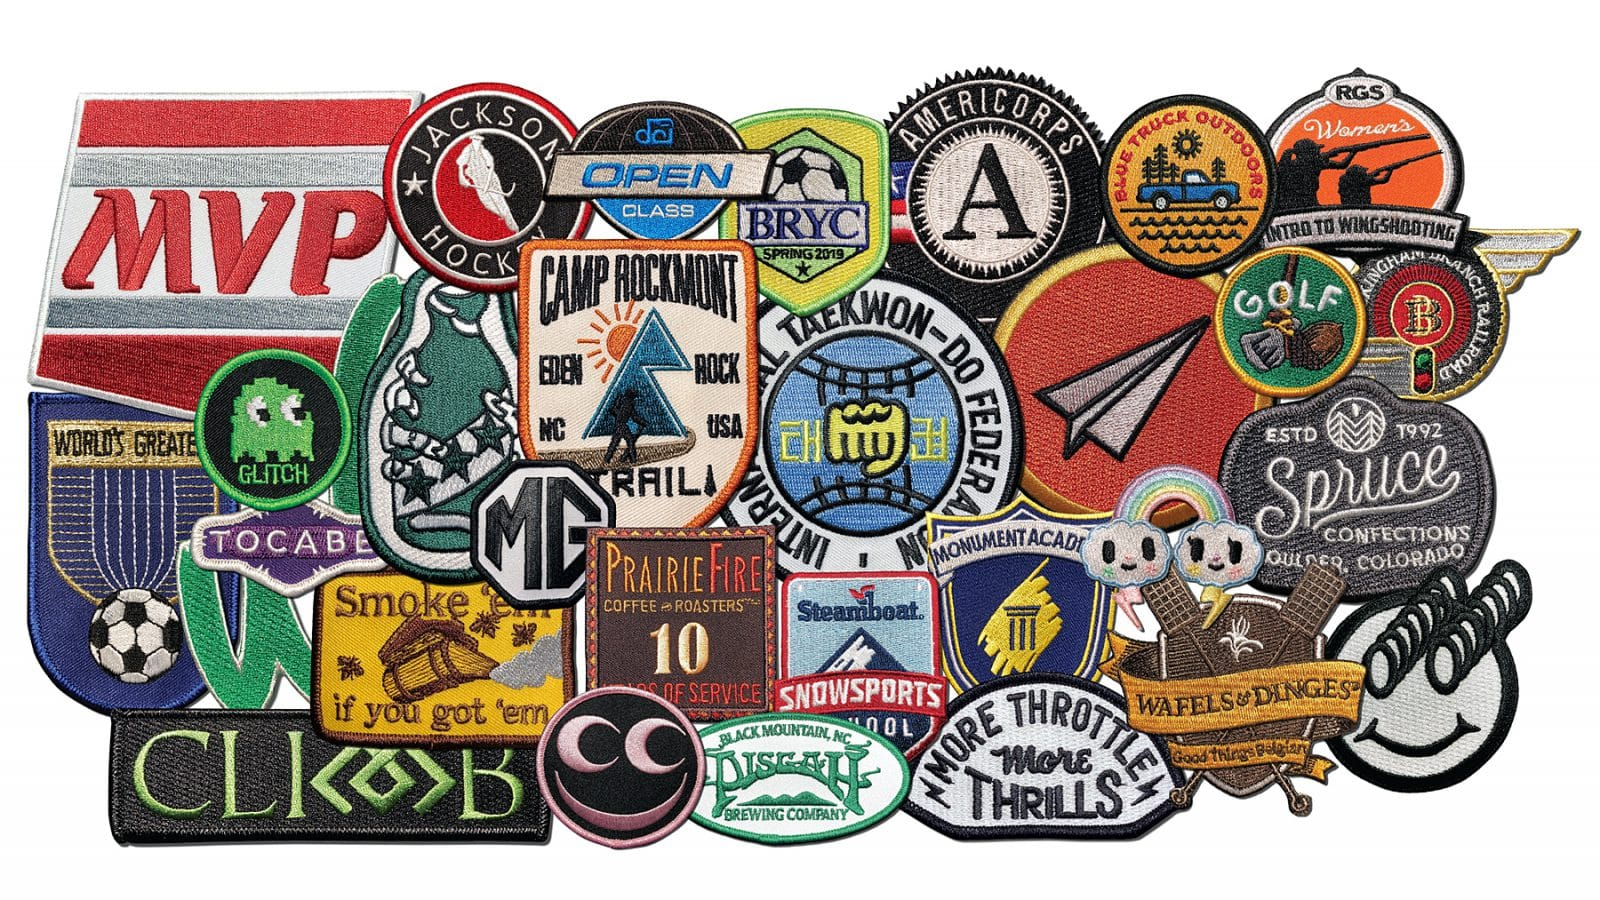 Custom Patch Photo Gallery image. Patch collage showing many styles, types, colors and sizes of patches made by A-B Emblem for actual clients.